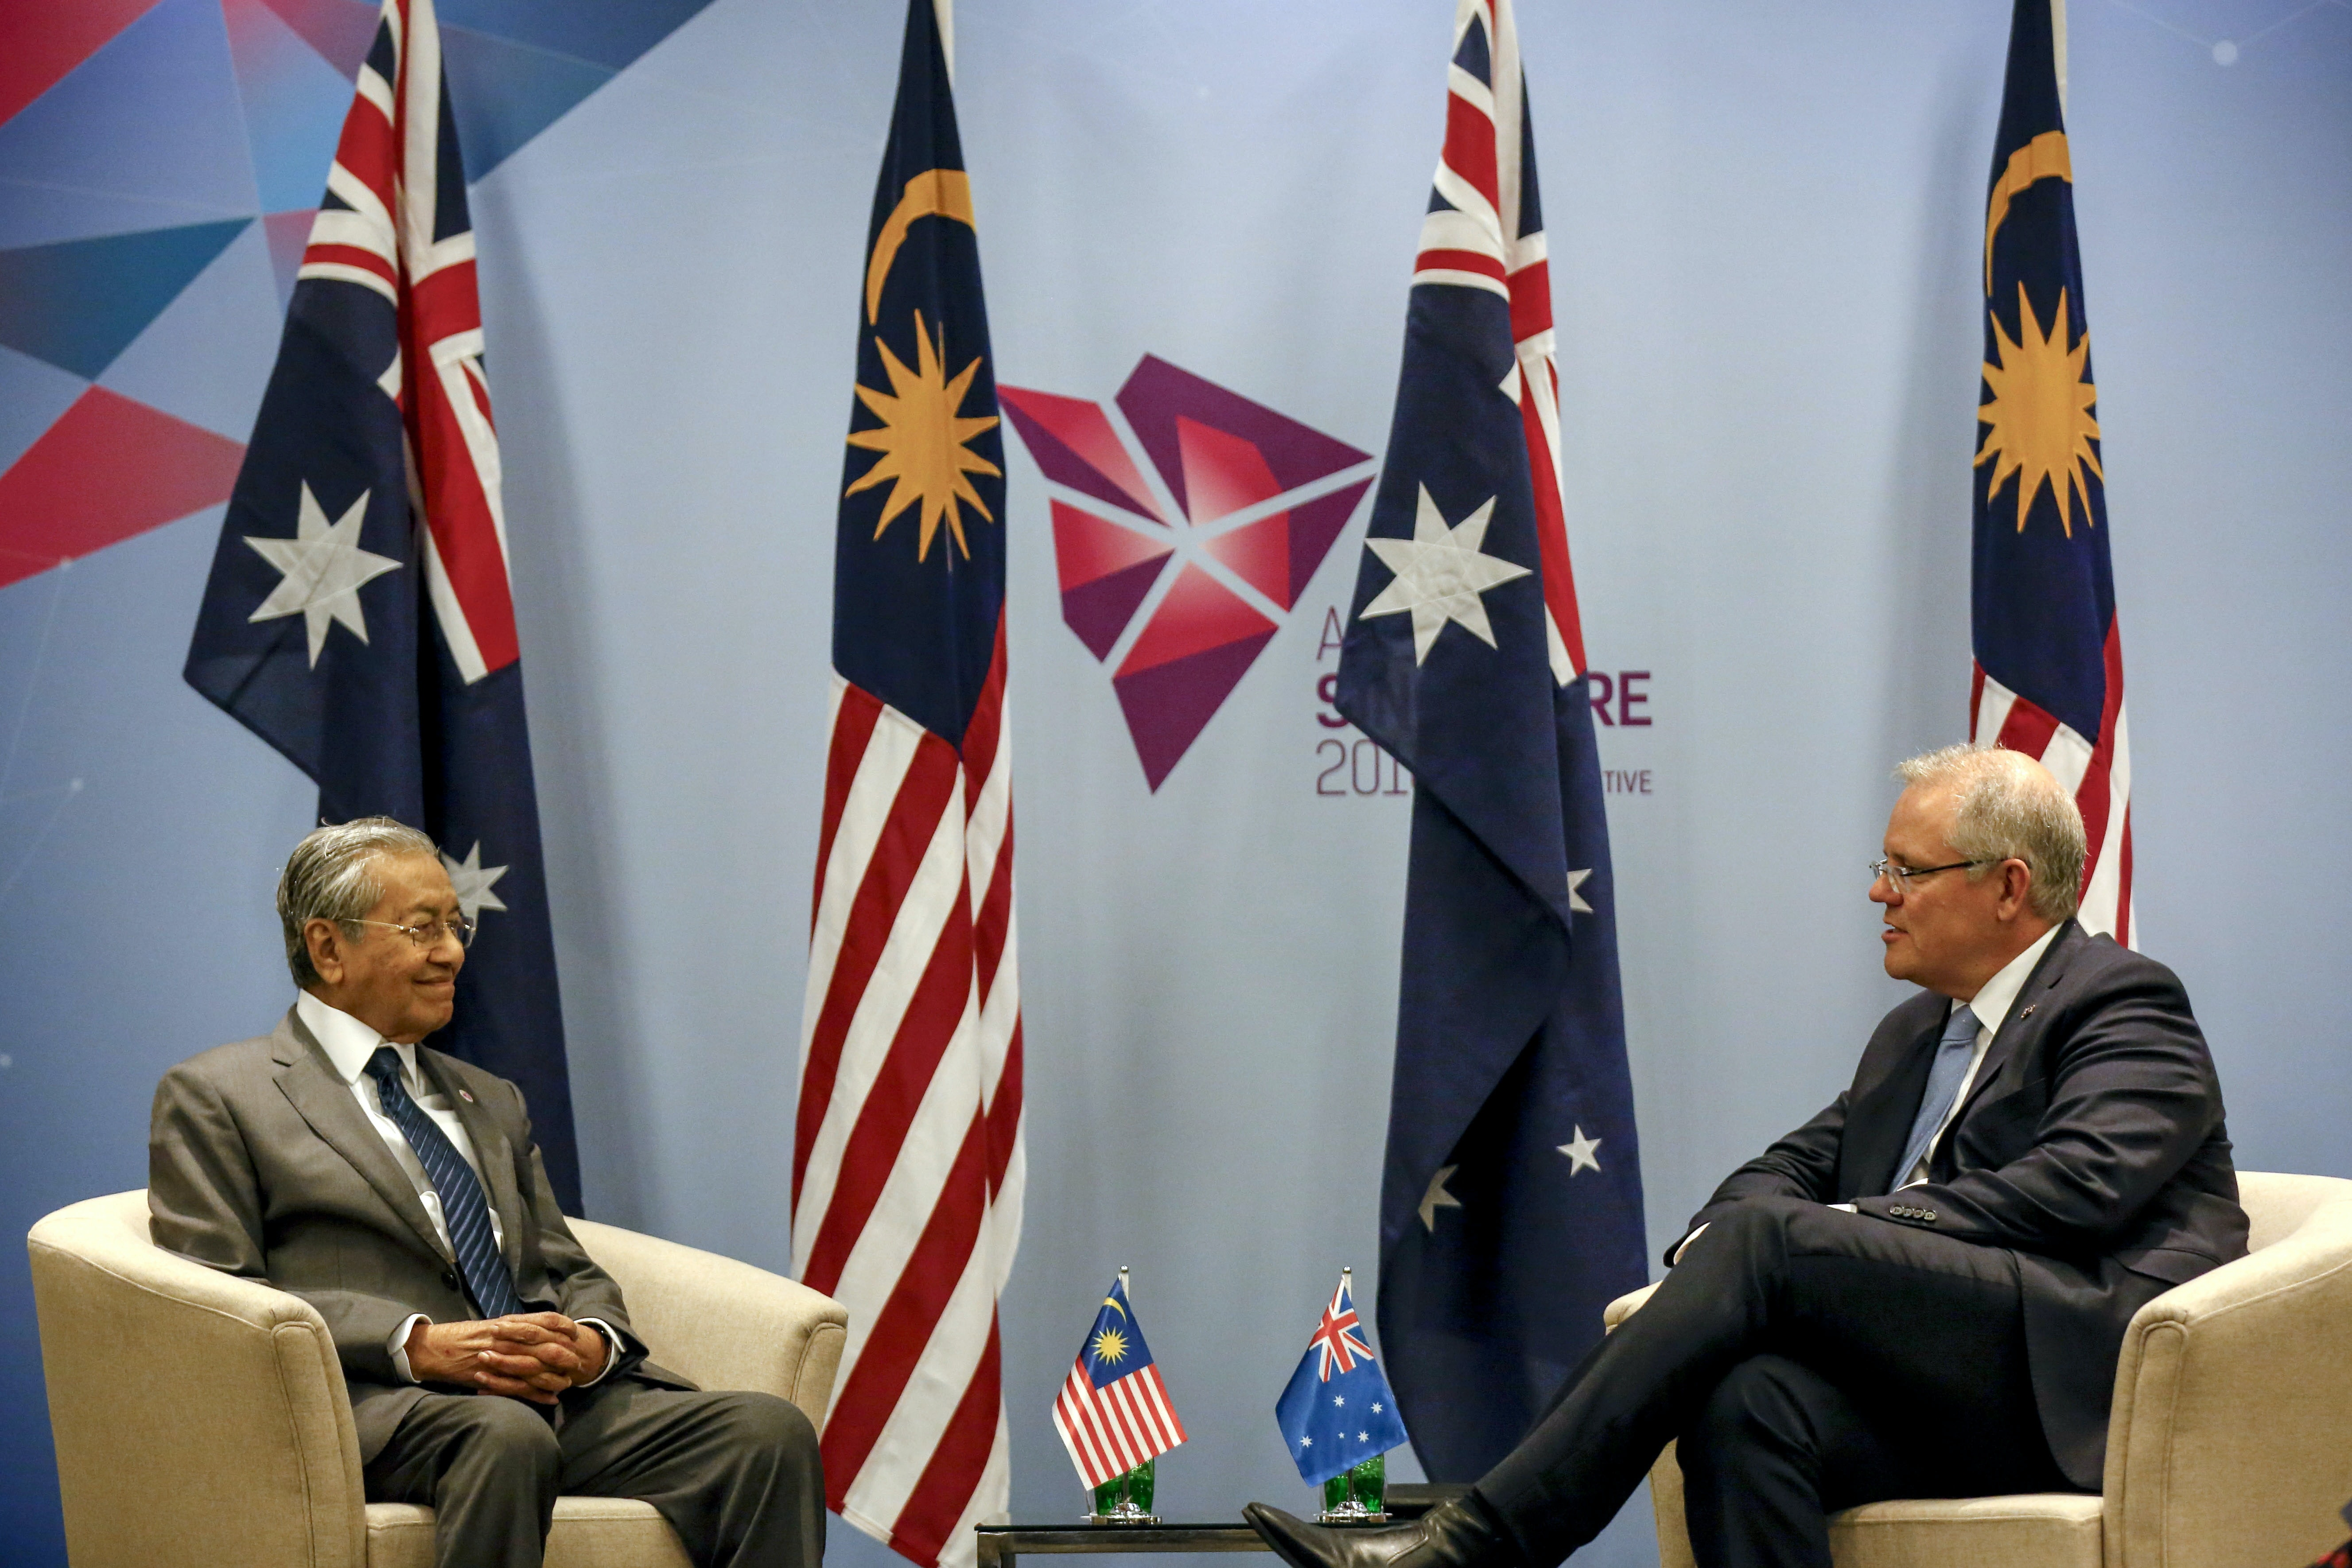 Frydenberg lashes out at Malaysia's prime minister for anti-Semitism